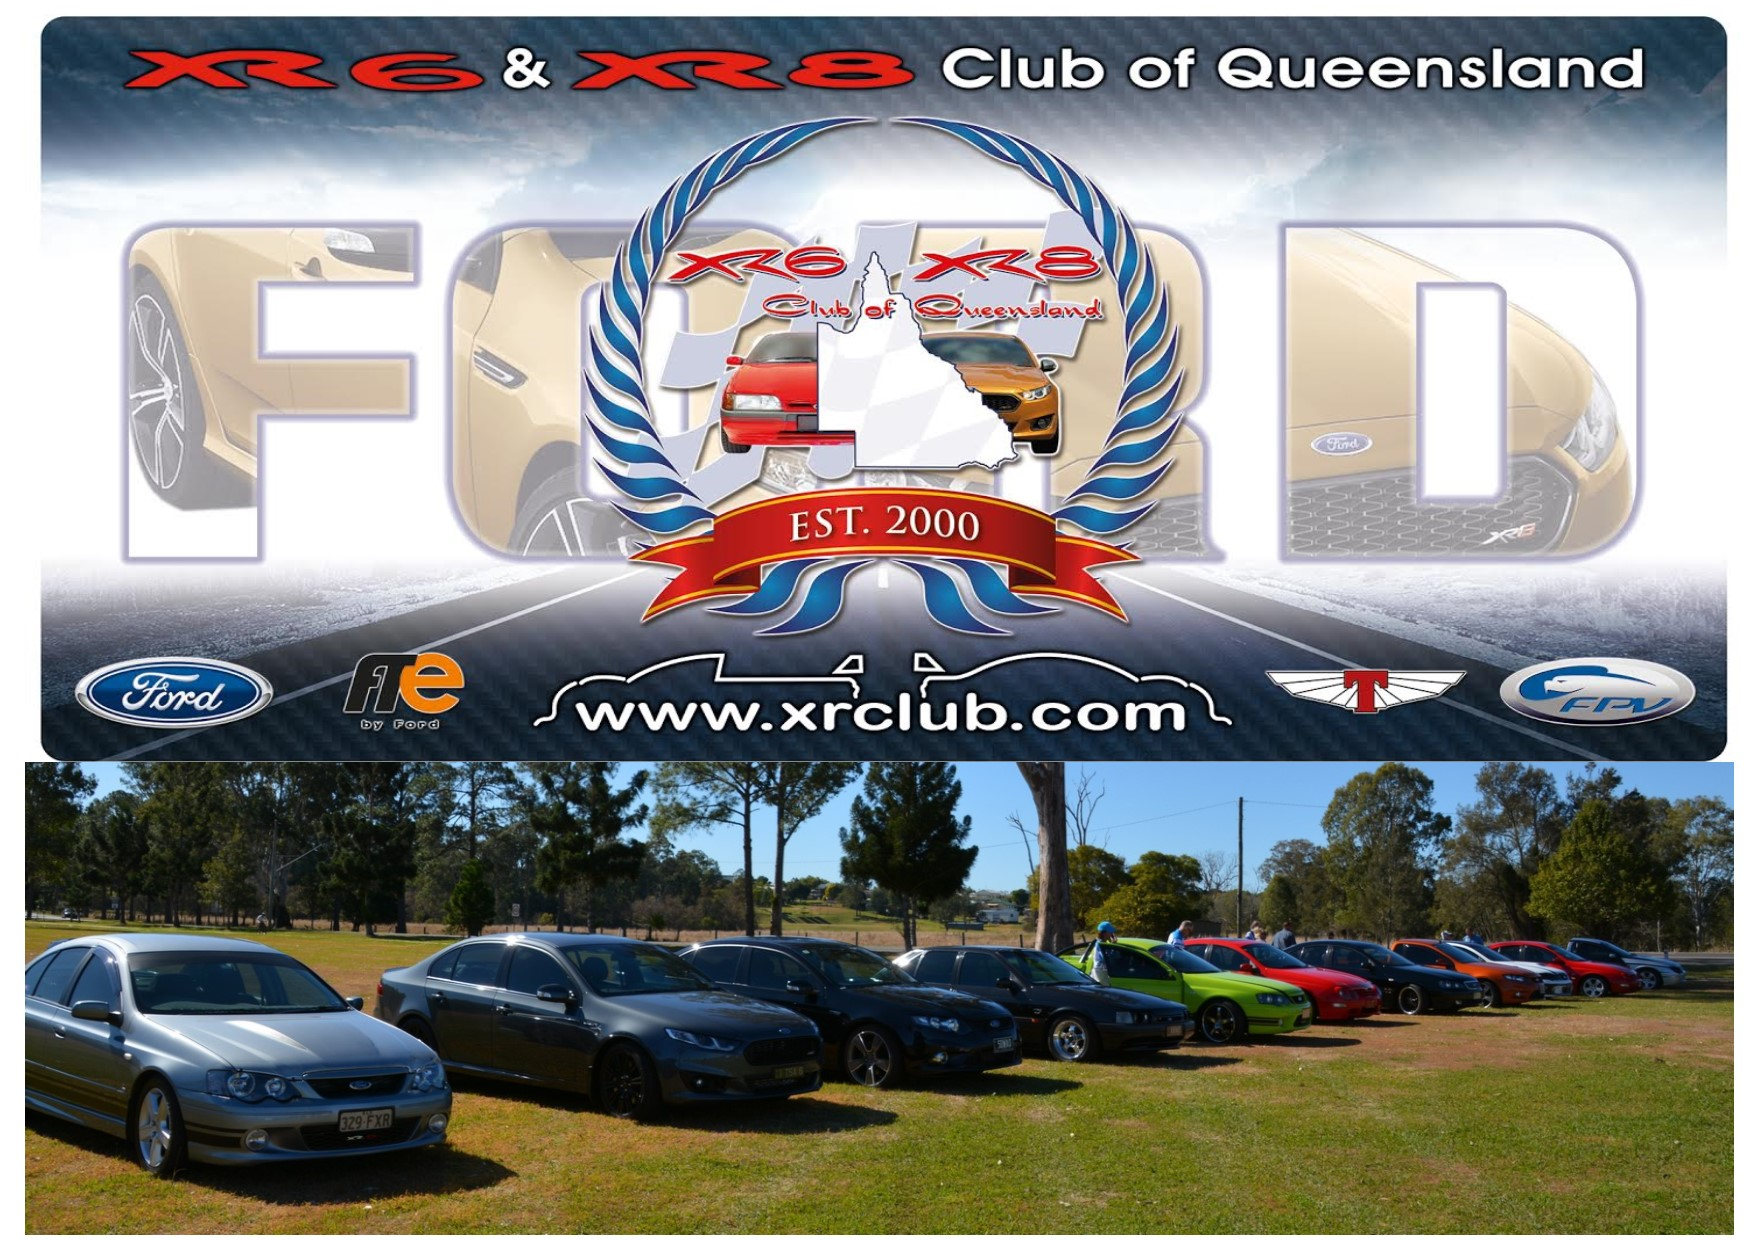 Family at XR6 & XR8 Club of Queensland